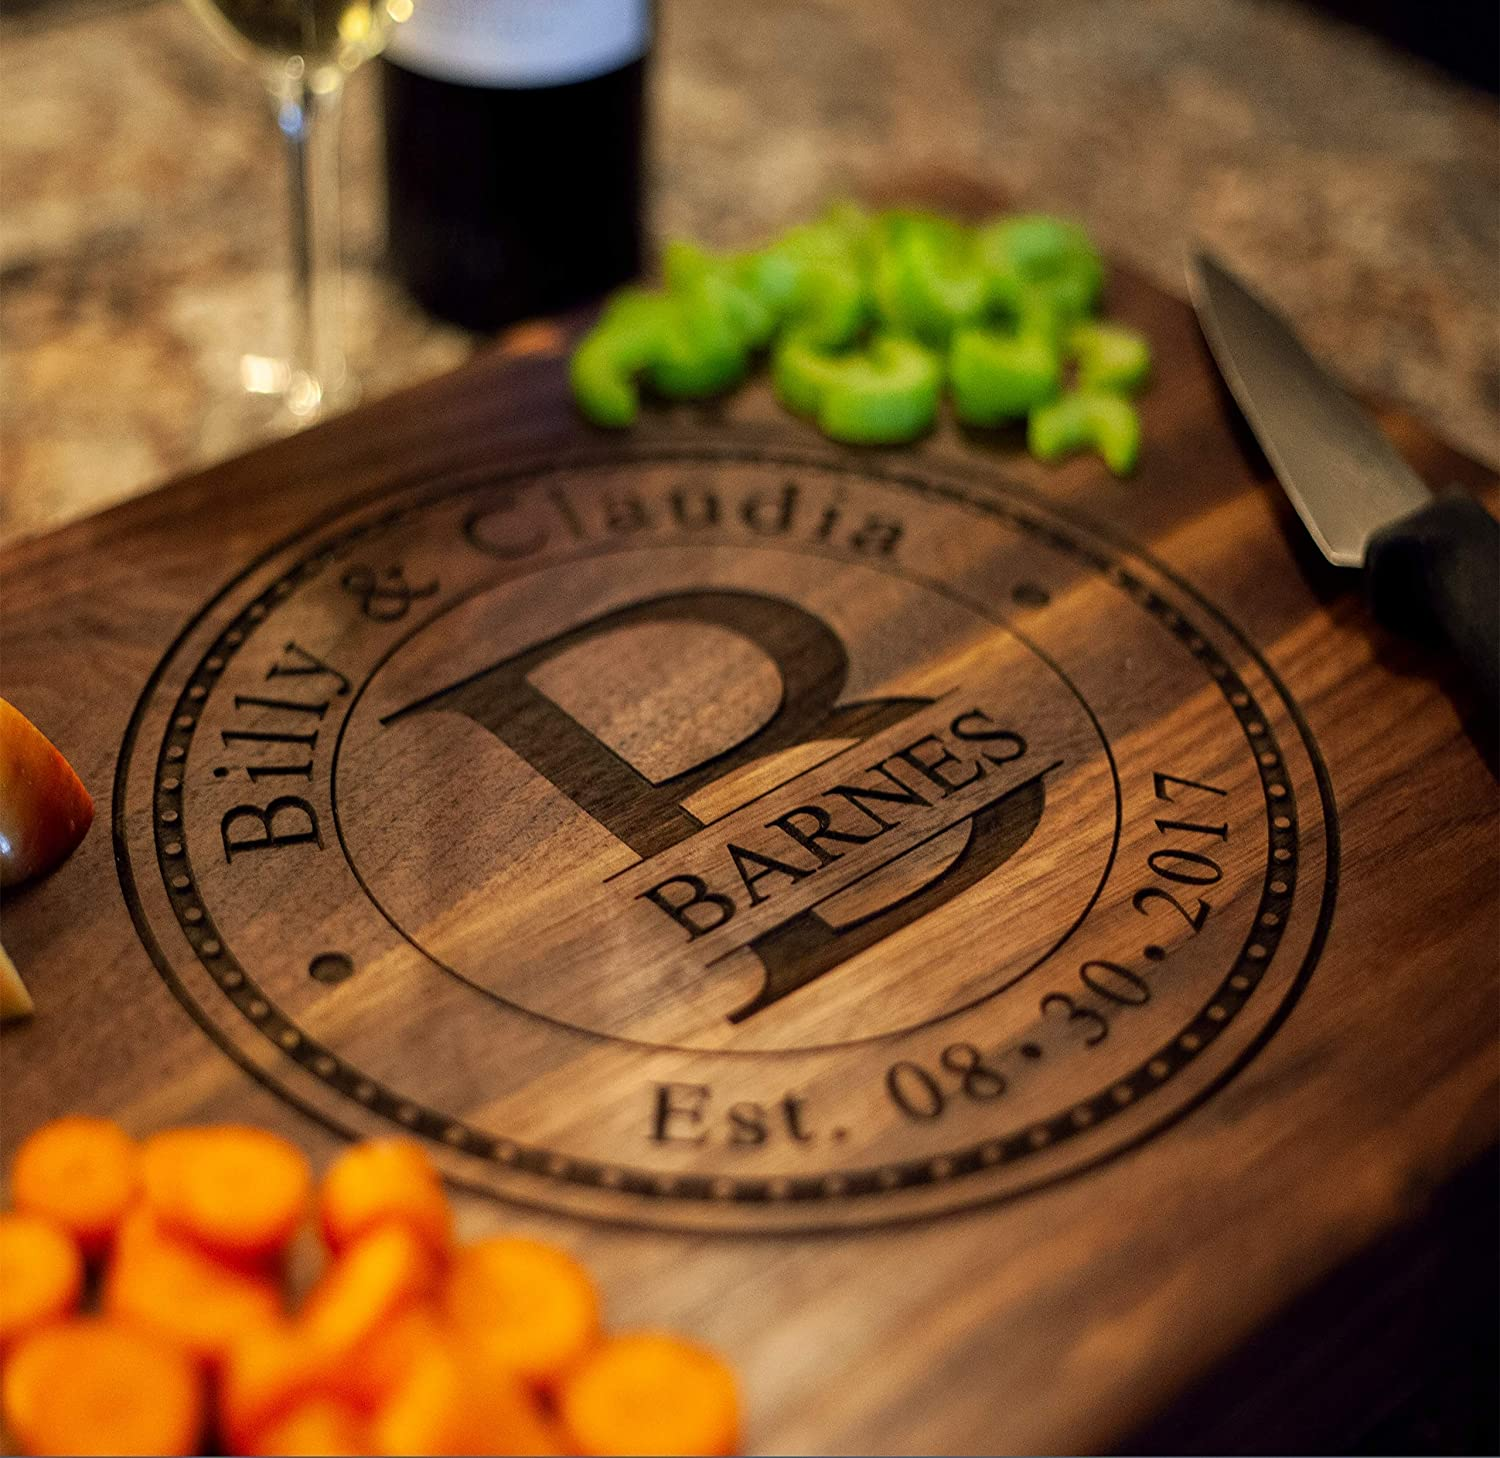 Personalized Cutting Board, USA Handmade Cutting Board - Personalized Gifts - Wedding Gifts for the Couple, Engagement Gifts, Gift for Parents